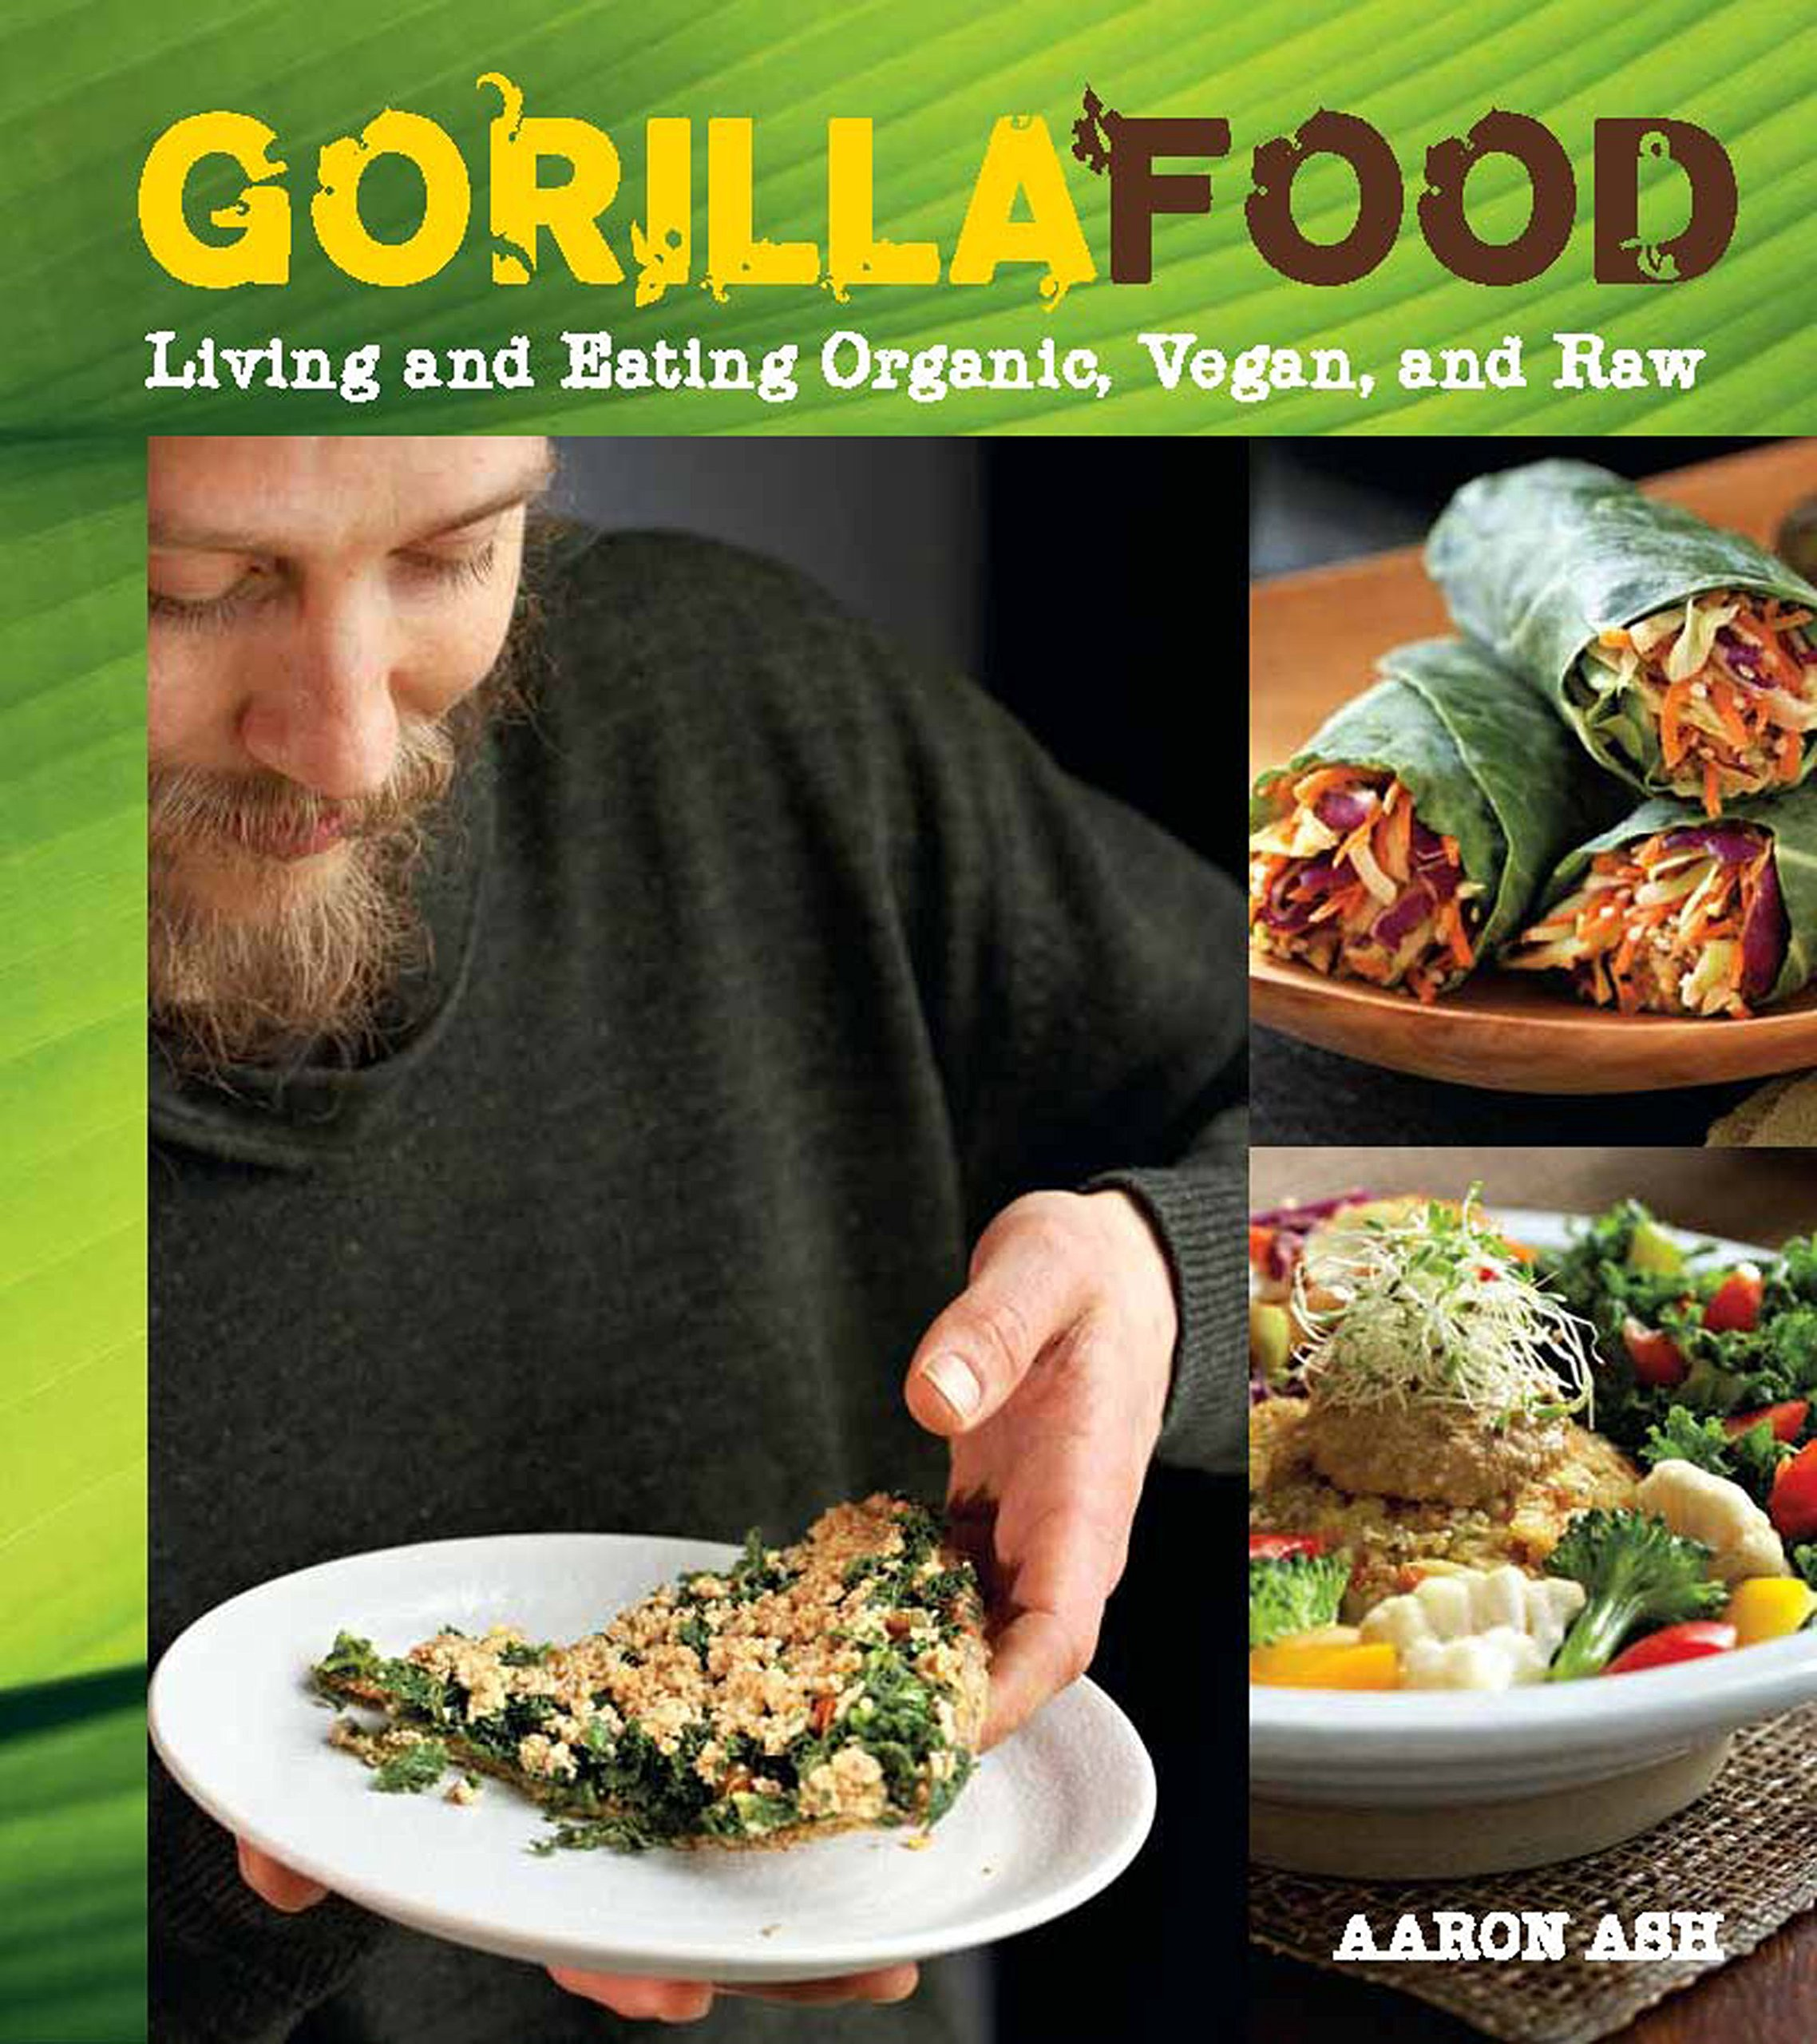 Gorilla food living and eating organic vegan and raw aaron ash gorilla food living and eating organic vegan and raw aaron ash 9781551524702 amazon books forumfinder Image collections